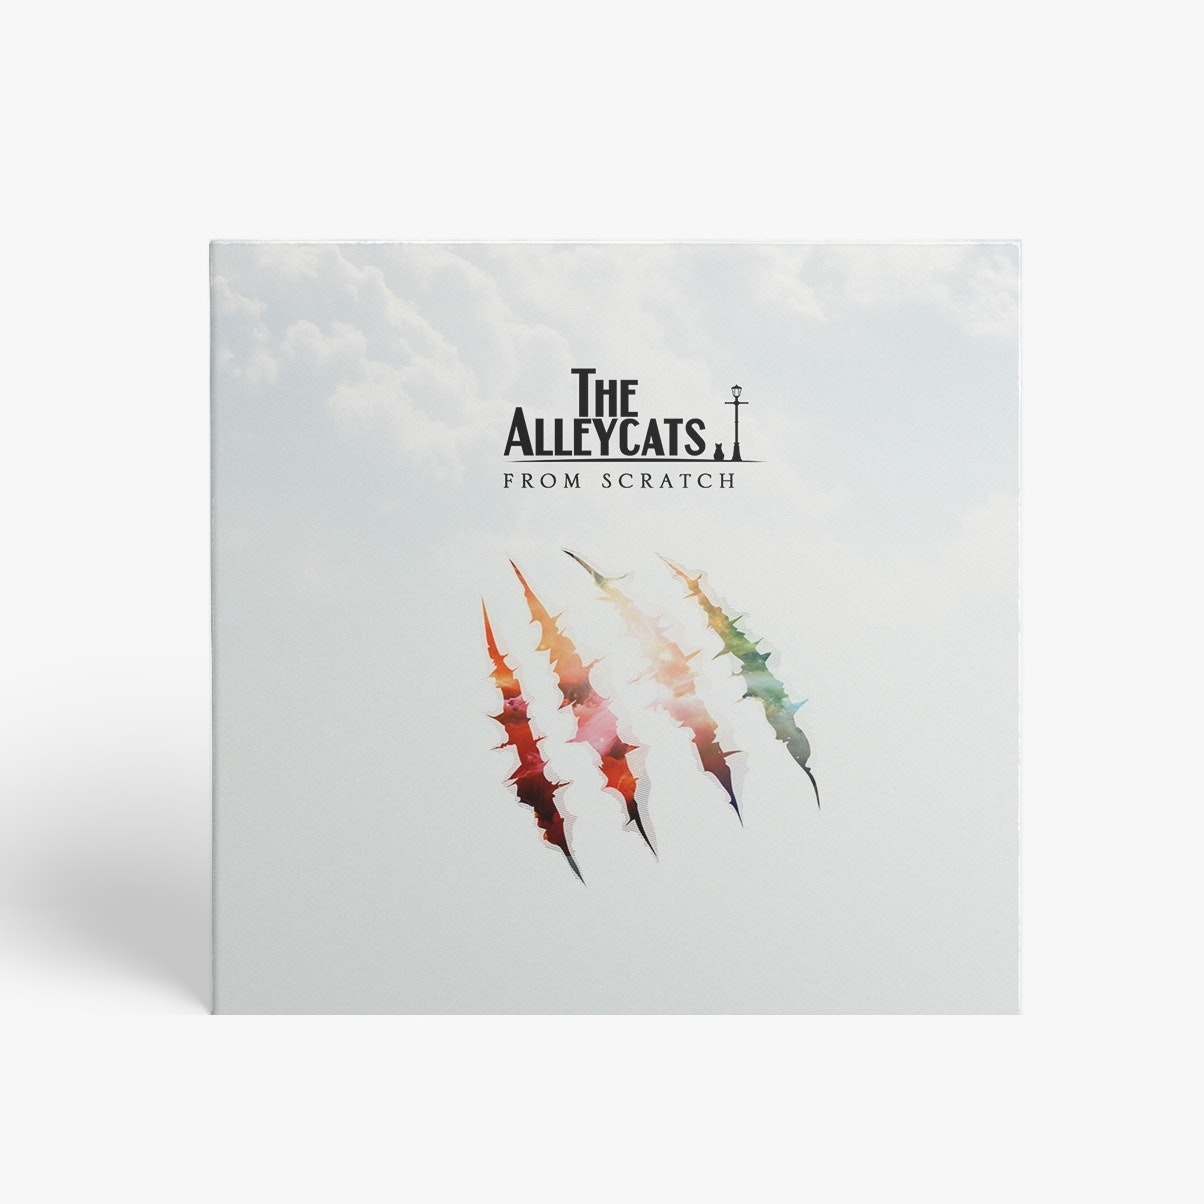 Minimalist album cover for The Alleycats